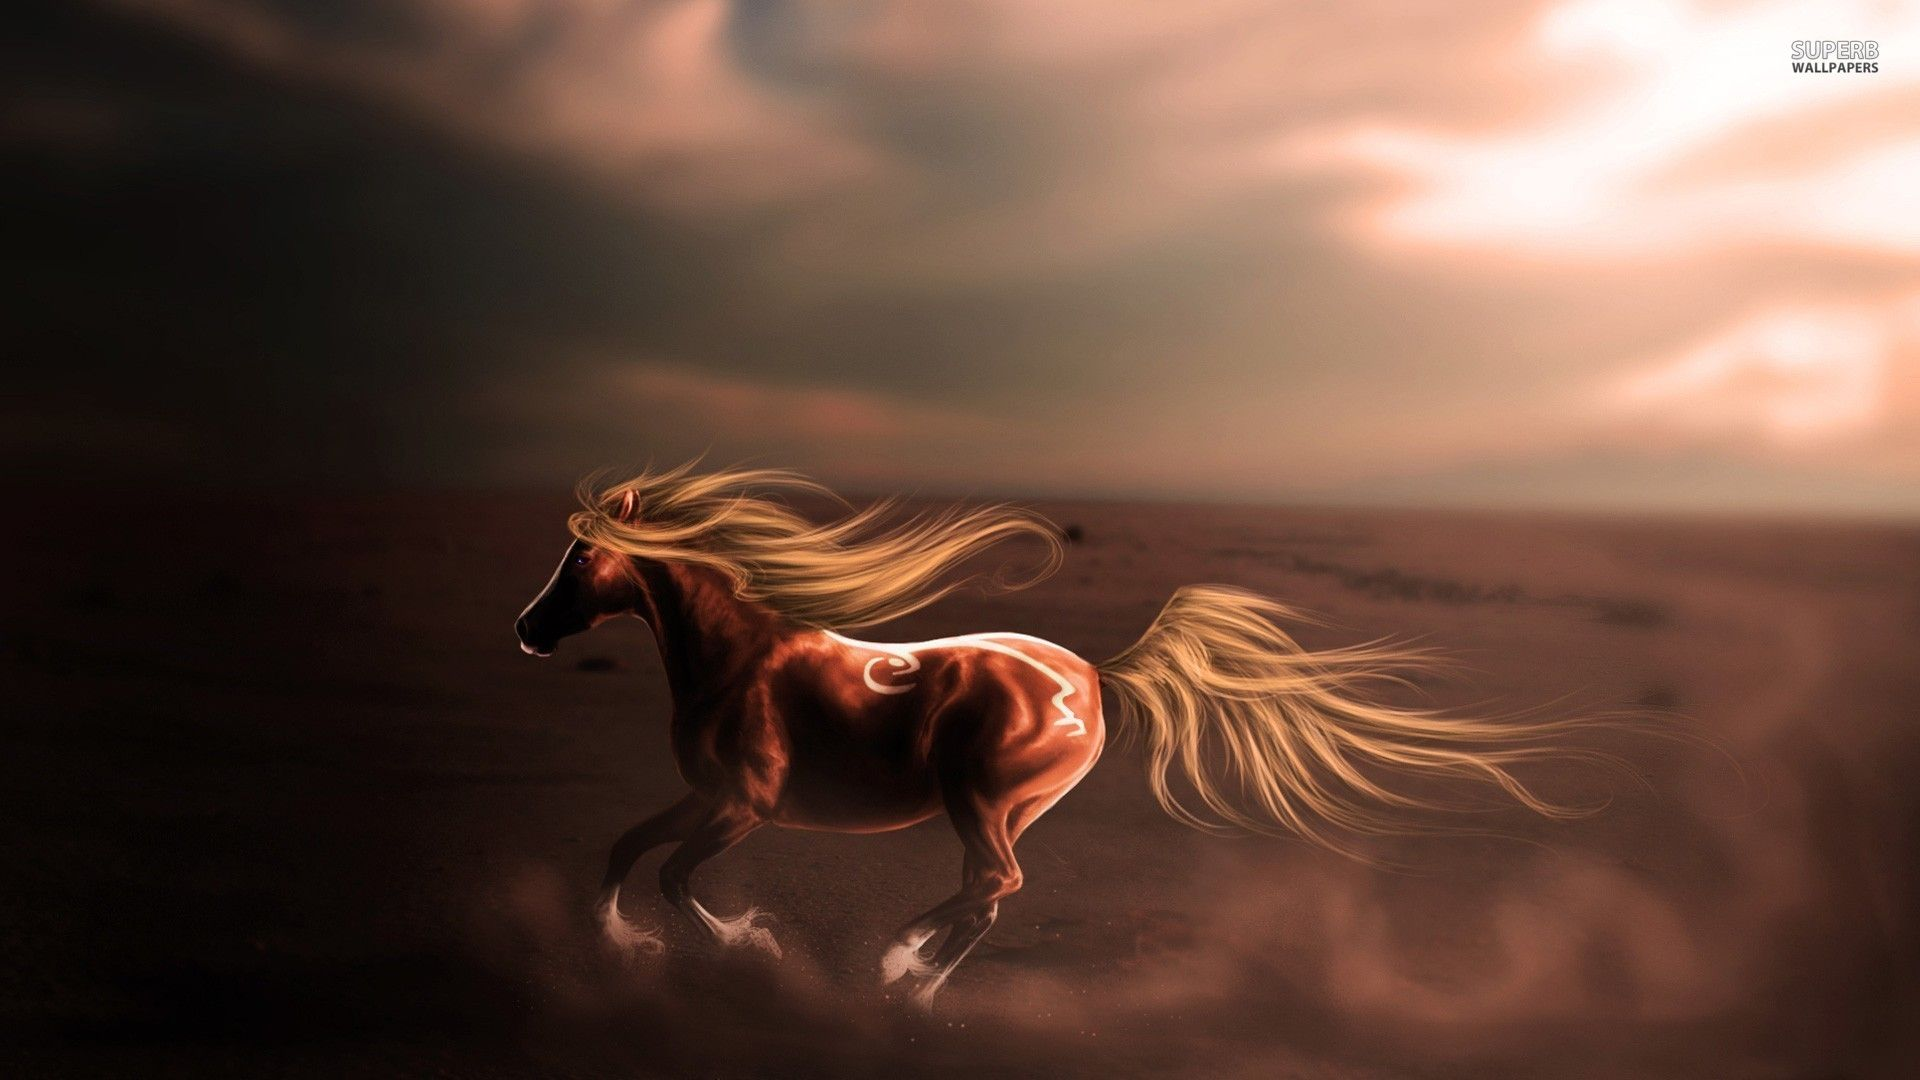 Download Wallpaper Horse Desert - a1a4b76e330798563c97ef3c0629044b  Graphic_494645.jpg